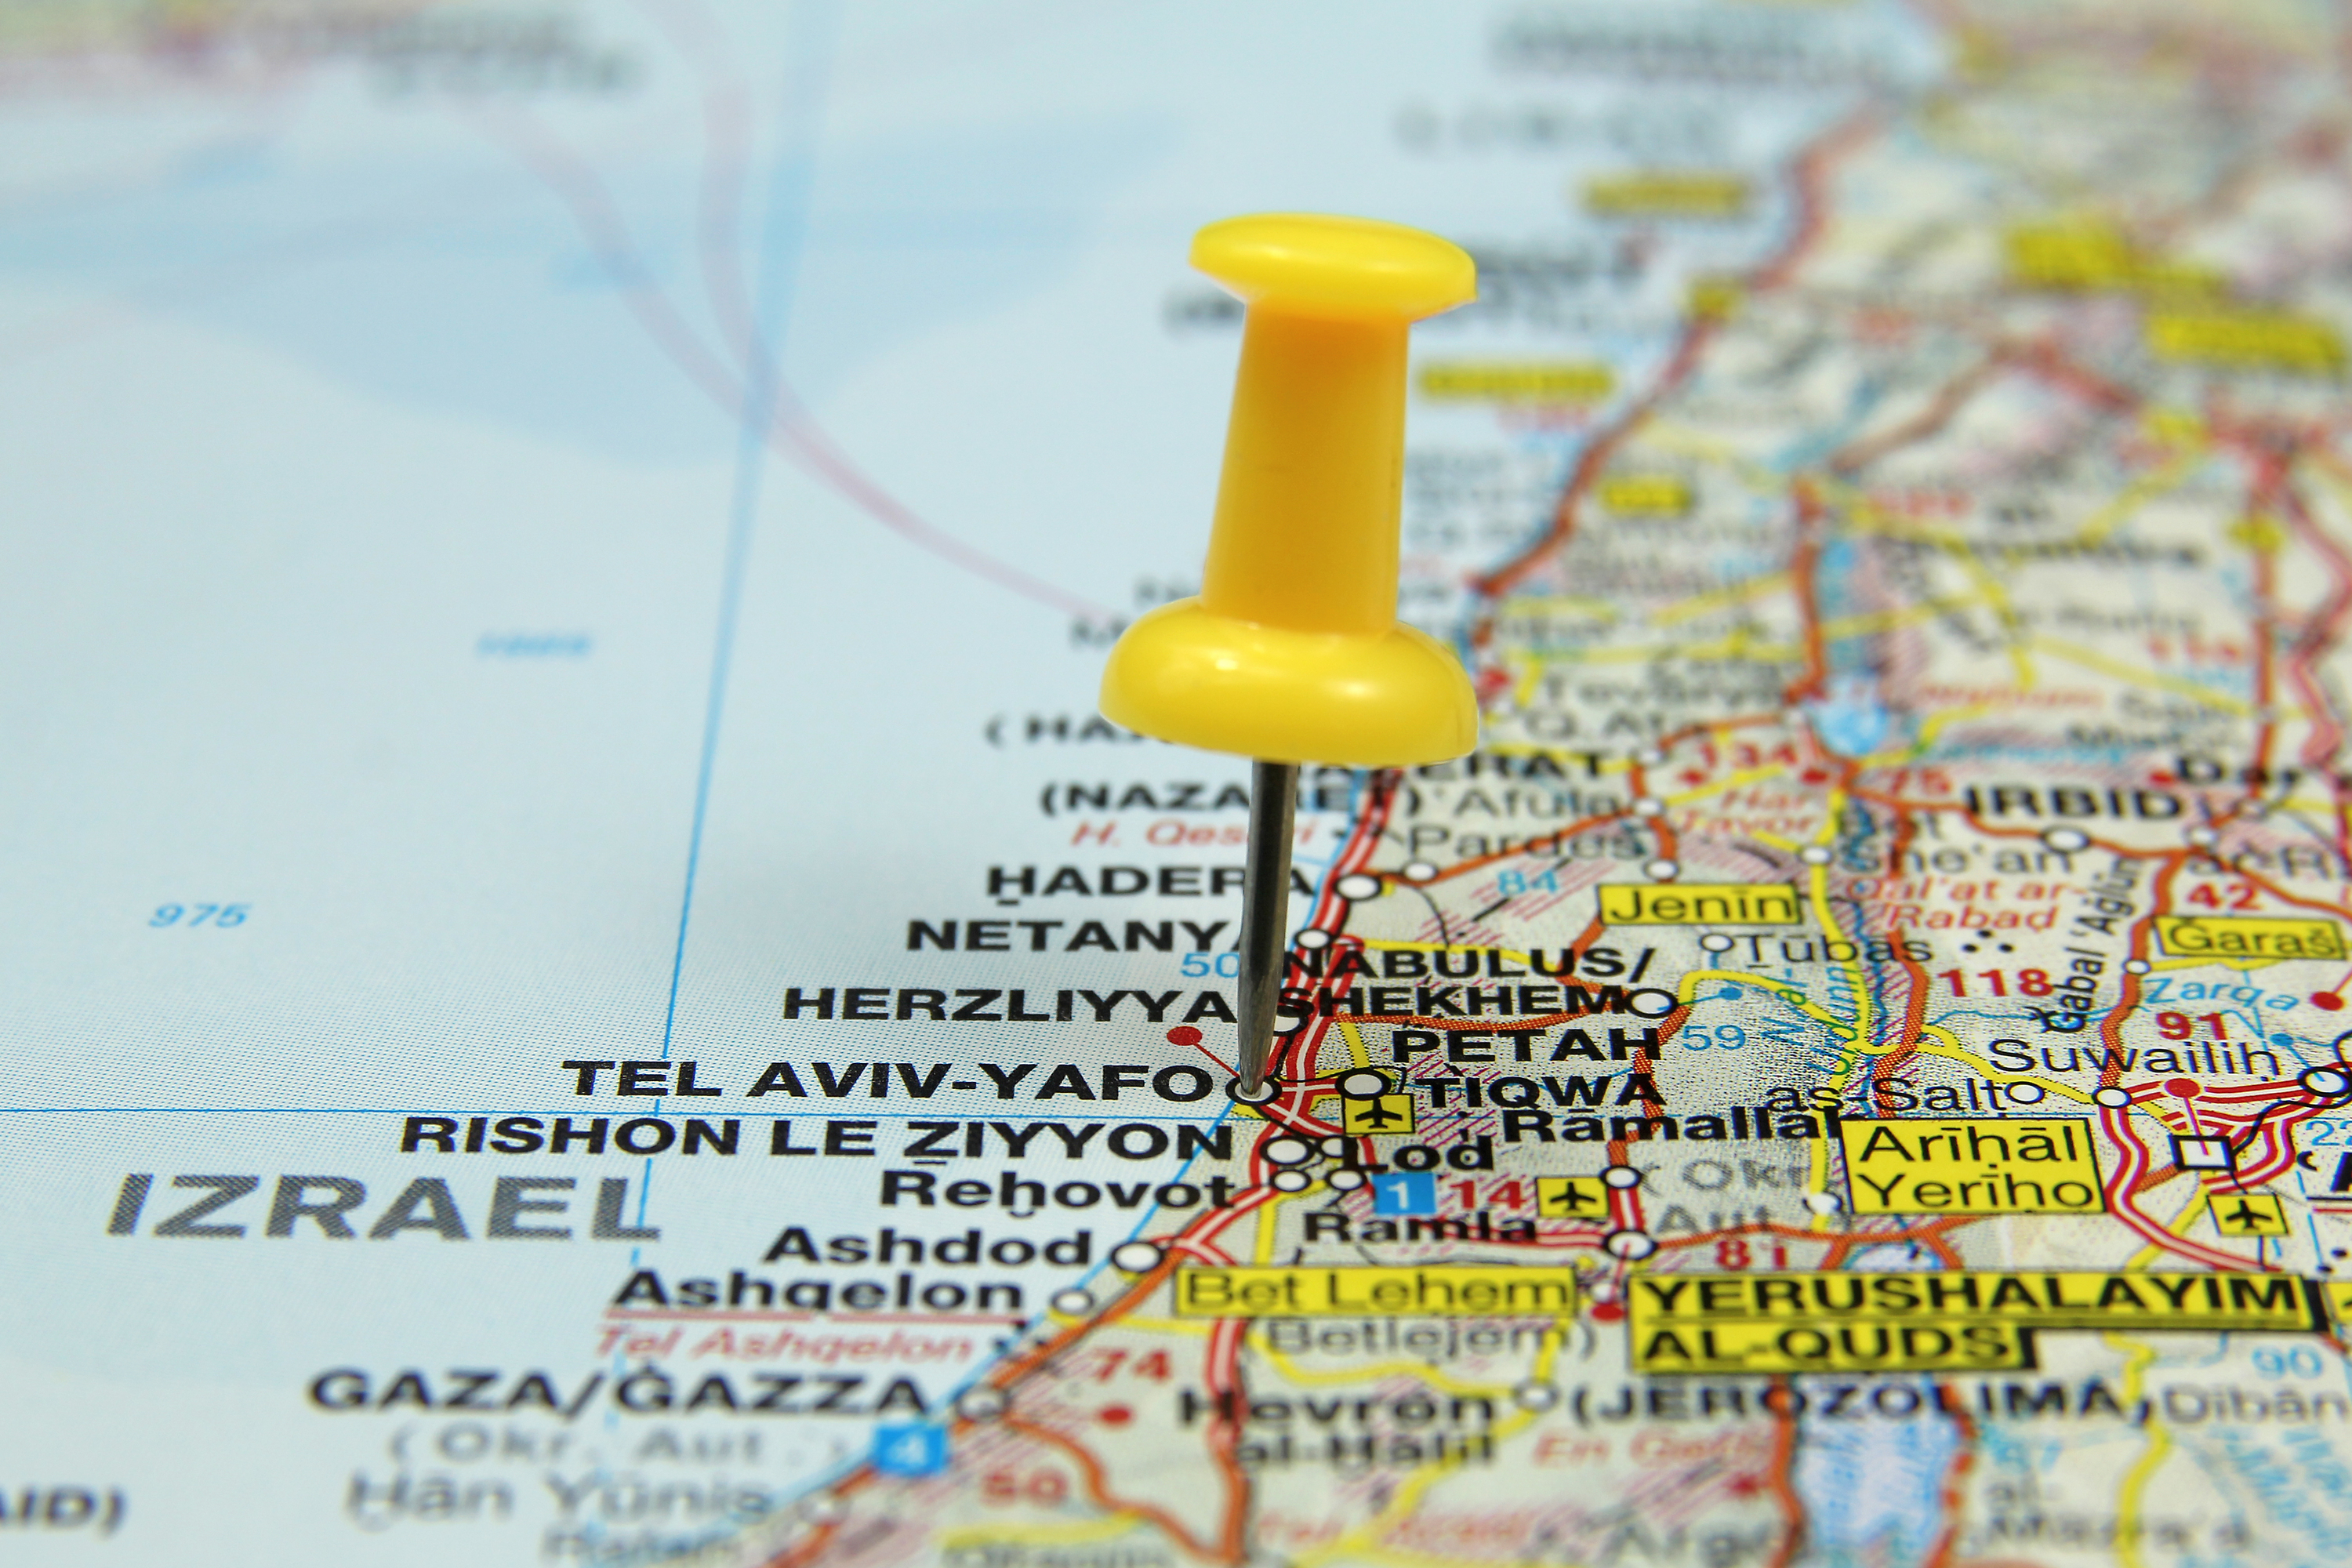 A complete area guide of places to visit in Israel from north to south